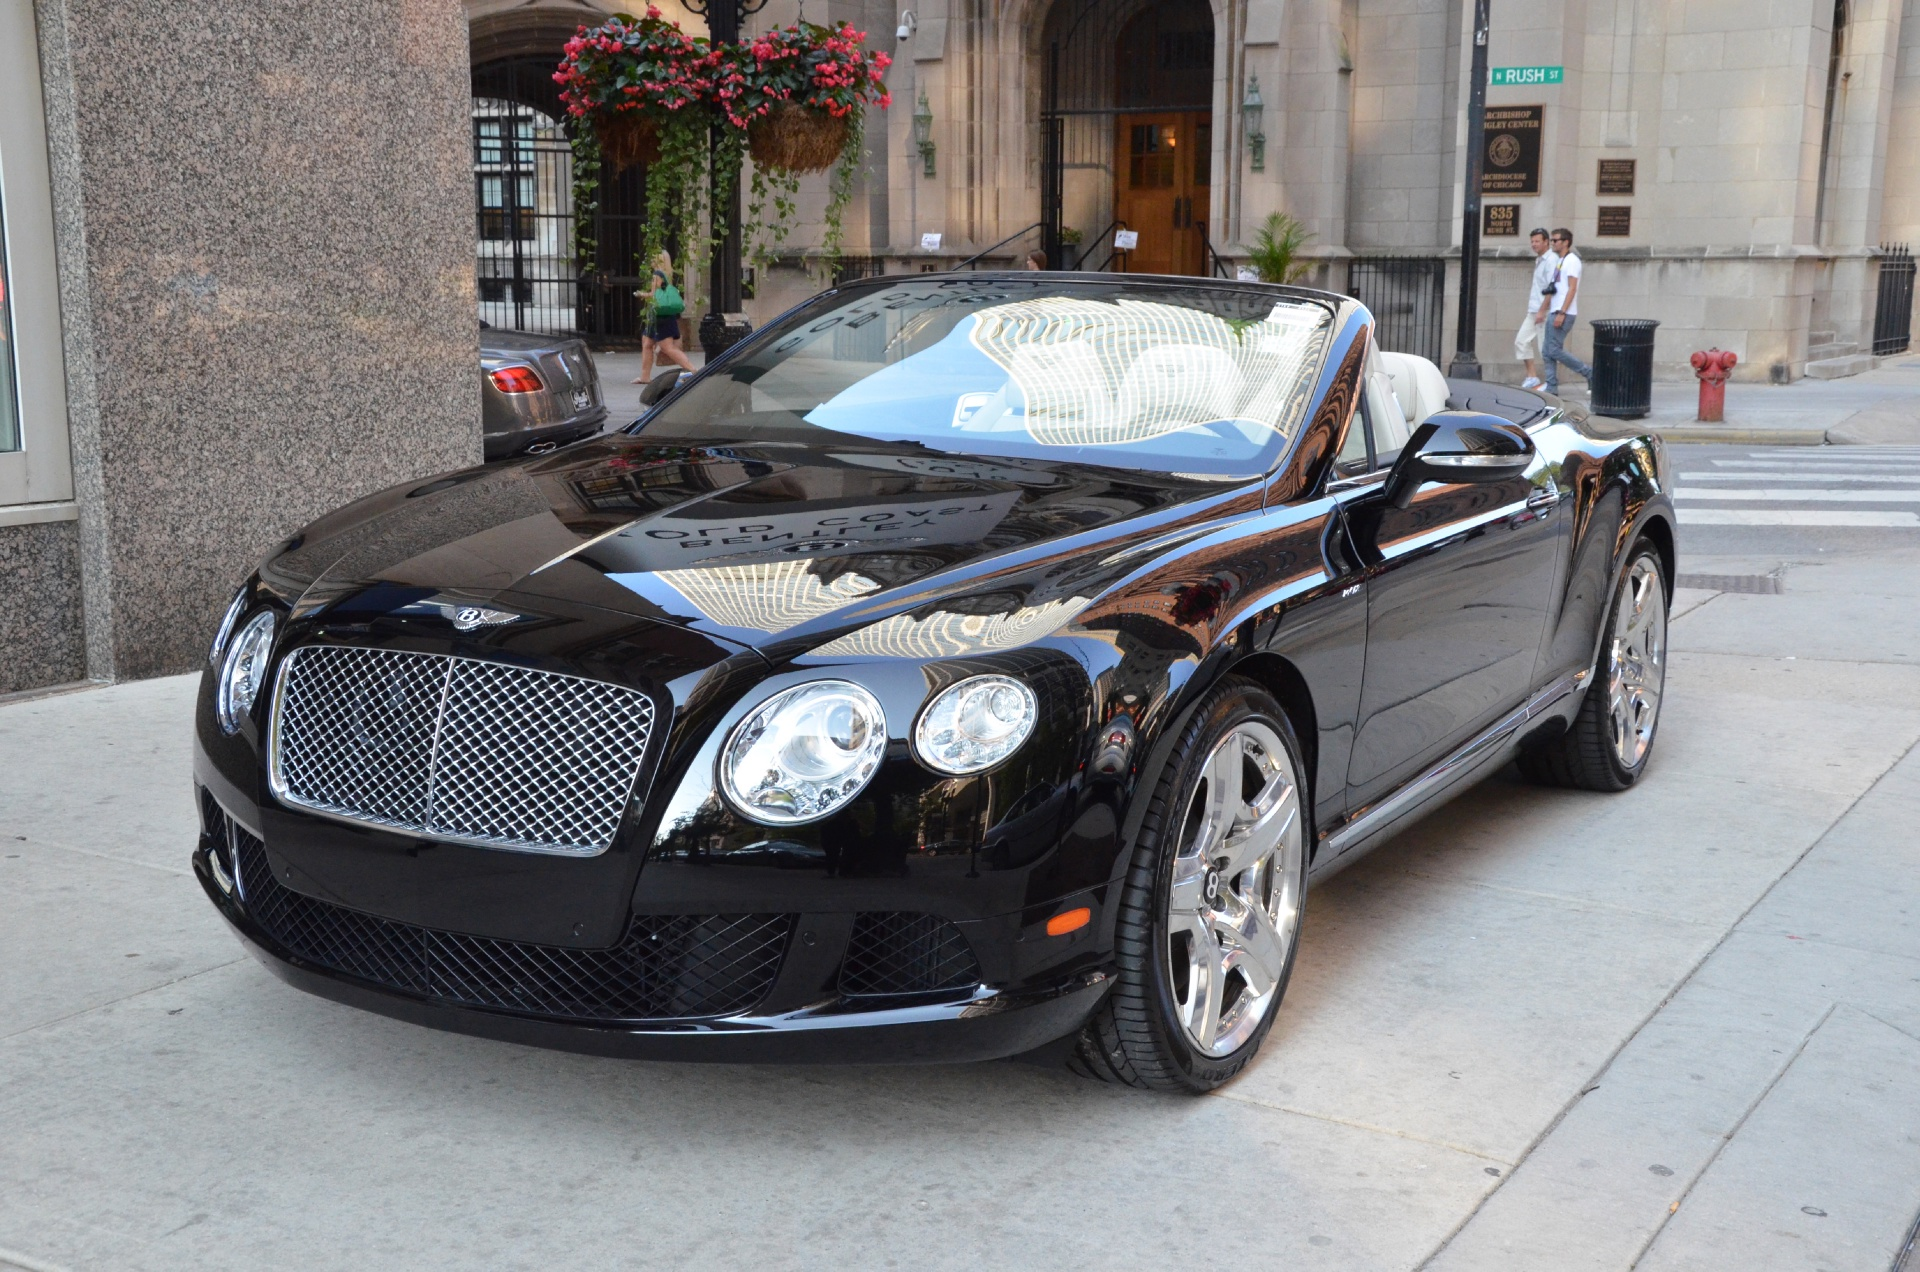 2014 bentley continental gtc used bentley used rolls royce used. Cars Review. Best American Auto & Cars Review